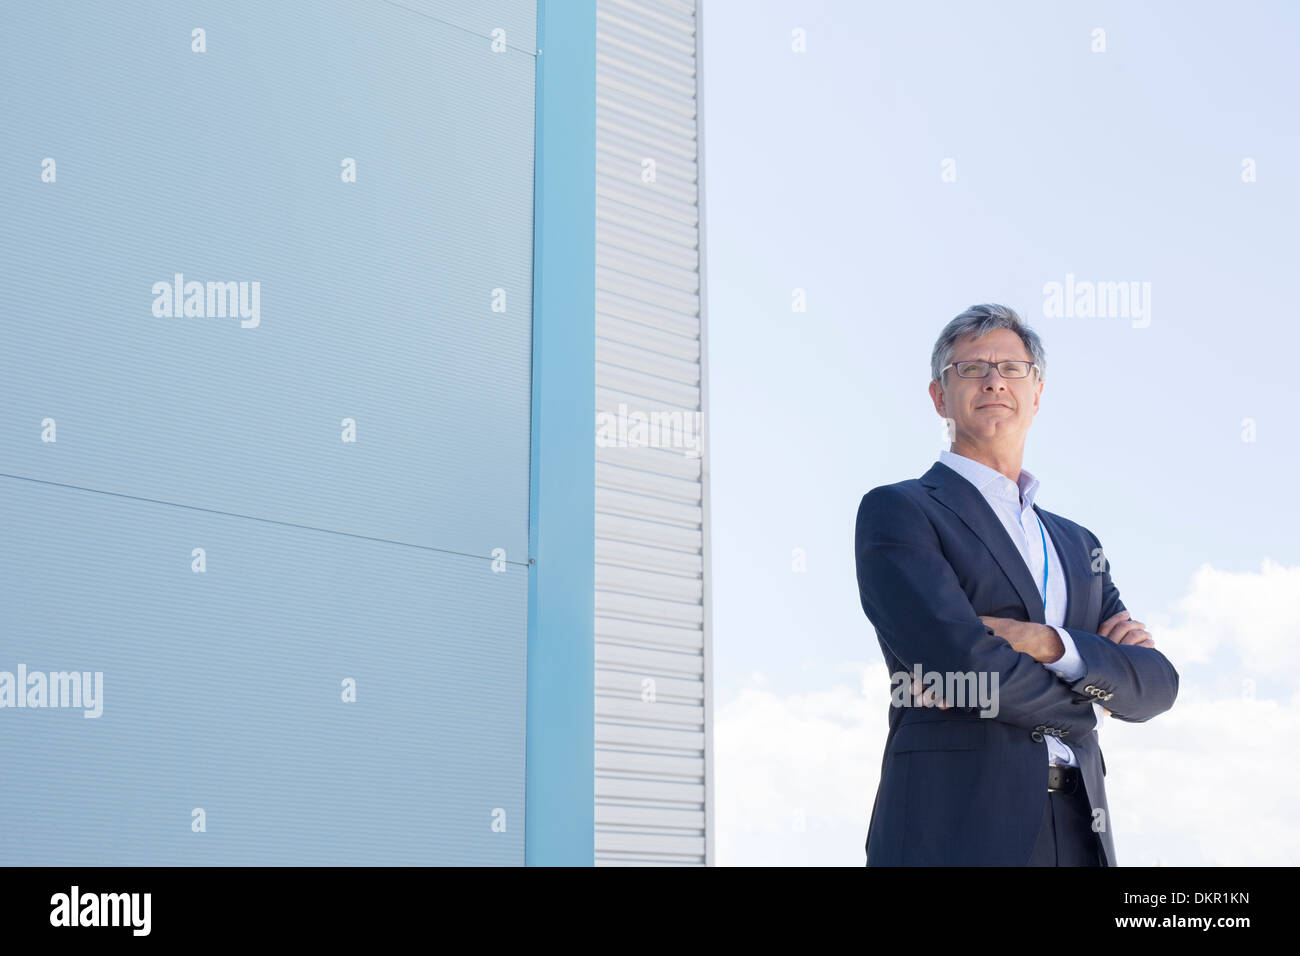 Businessman standing below highrise buildings - Stock Image